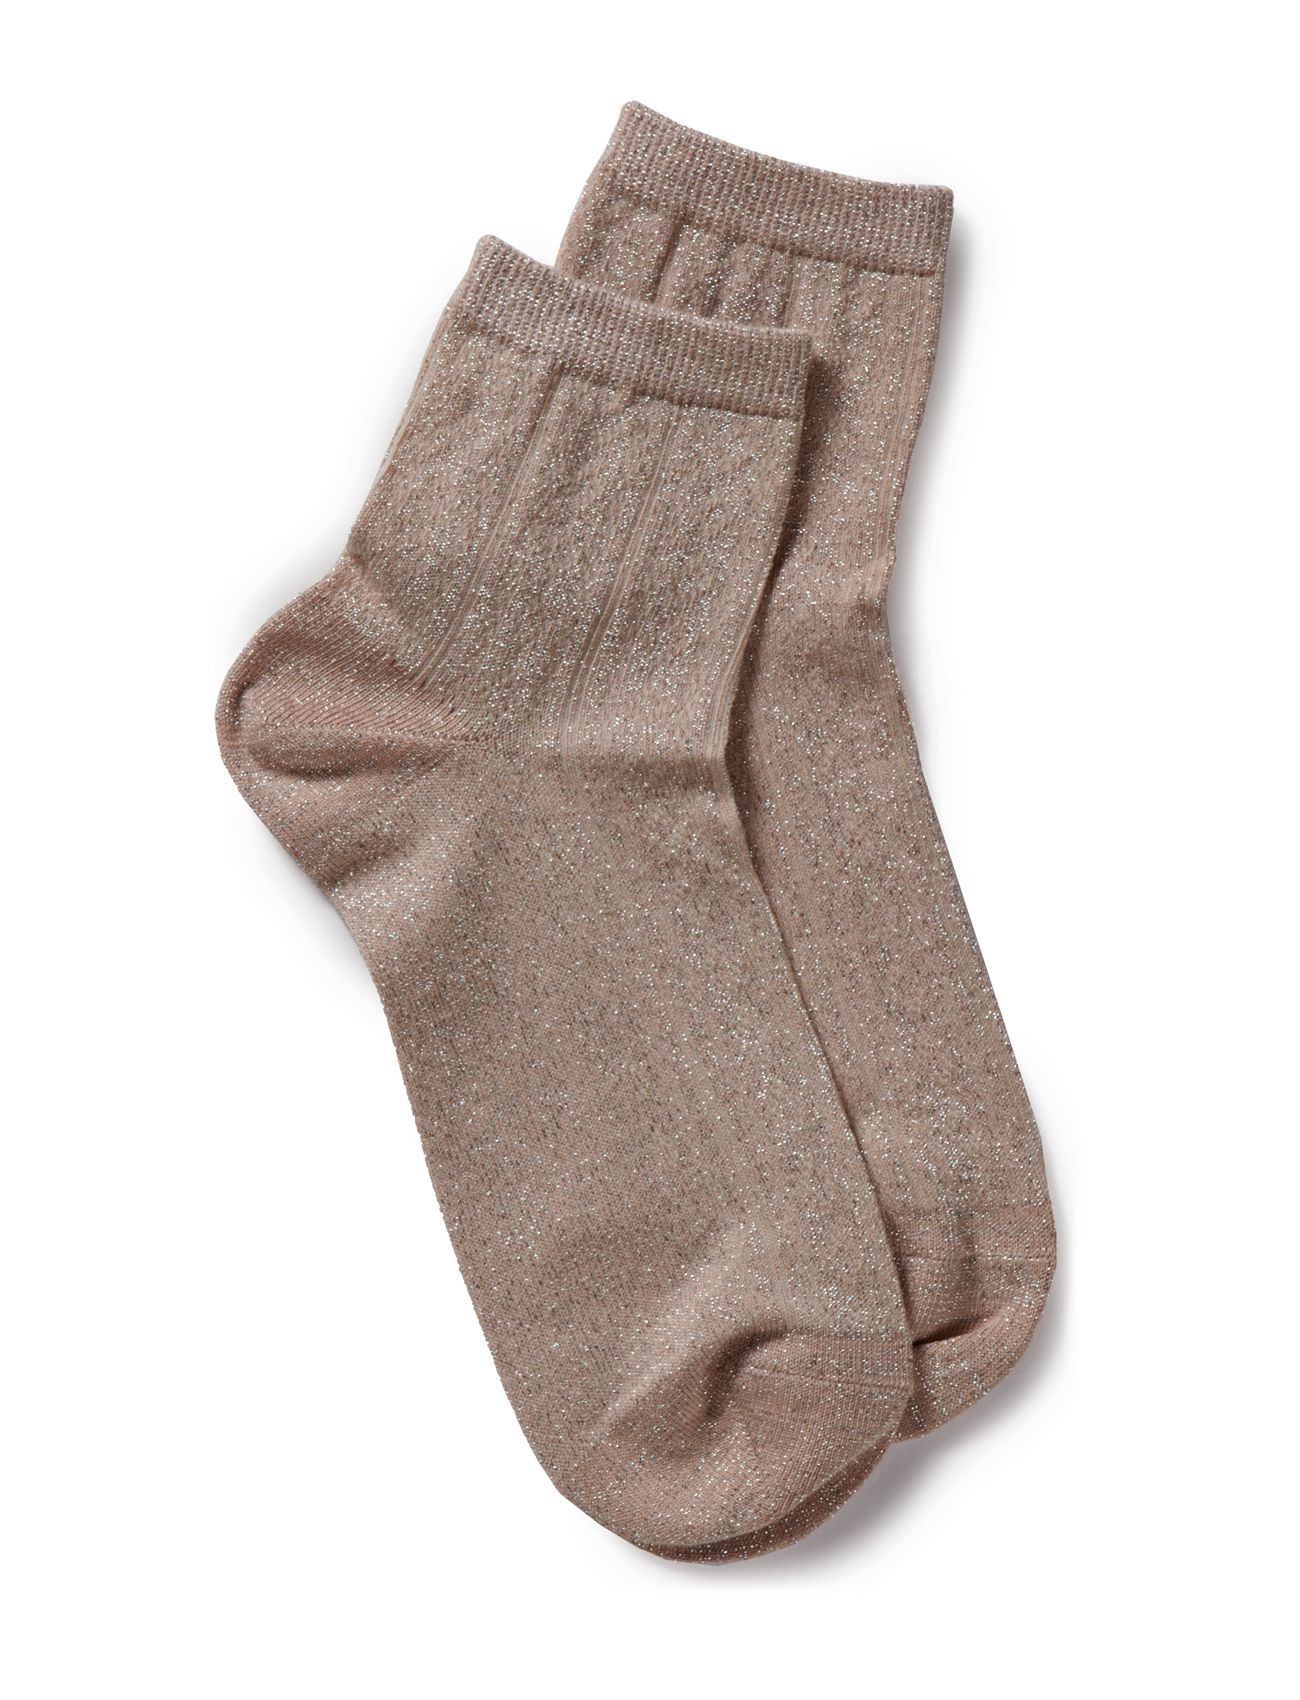 MP Socks Anklesock Pointelle